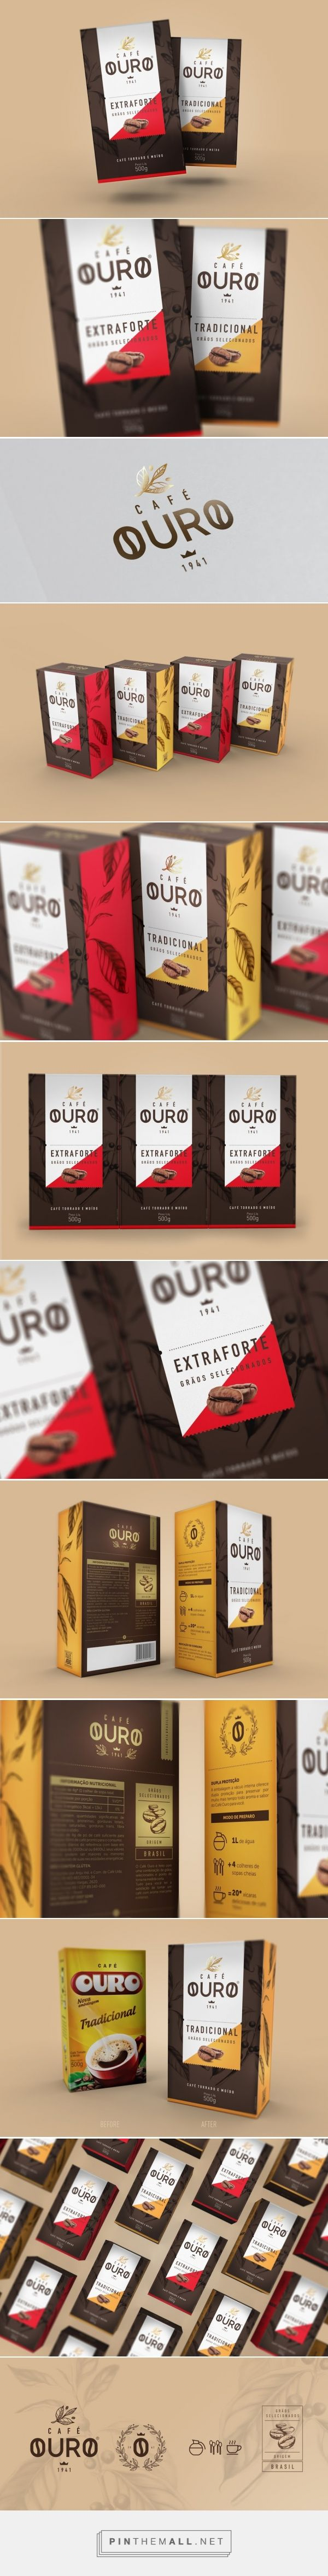 Café Ouro  -  Packaging of the World - Creative Package Design Gallery - http://www.packagingoftheworld.com/2016/05/cafe-ouro.html